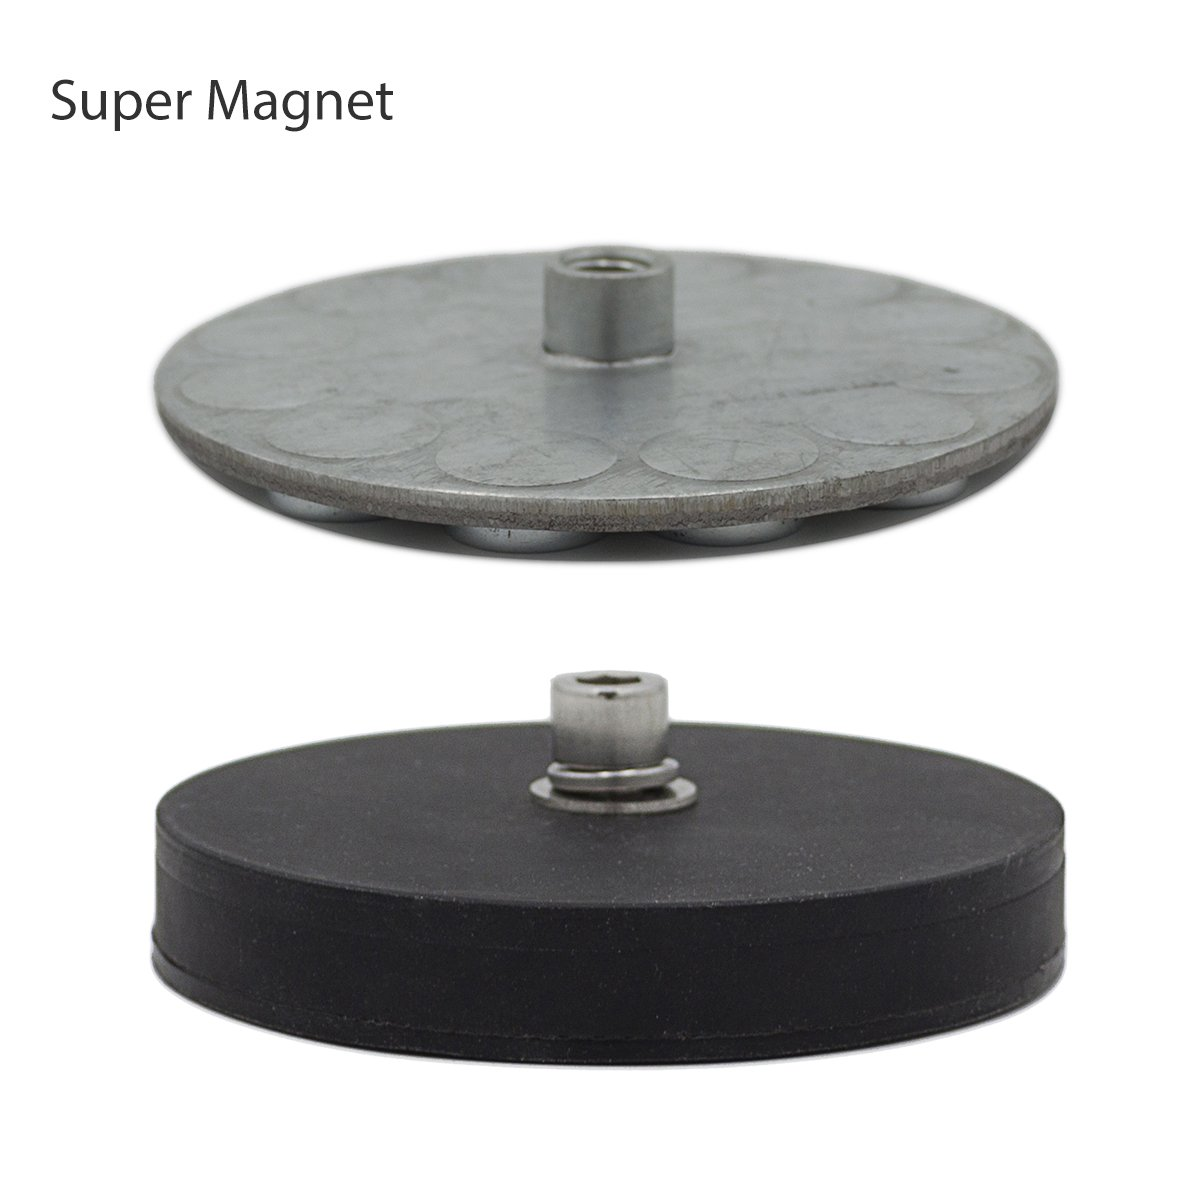 WOWLED 2pcs Magnetic Mount with Rubber Pad Tube Clamp for LED Lighting LED Work Lights Driving Lights Magnet Stainless Steel